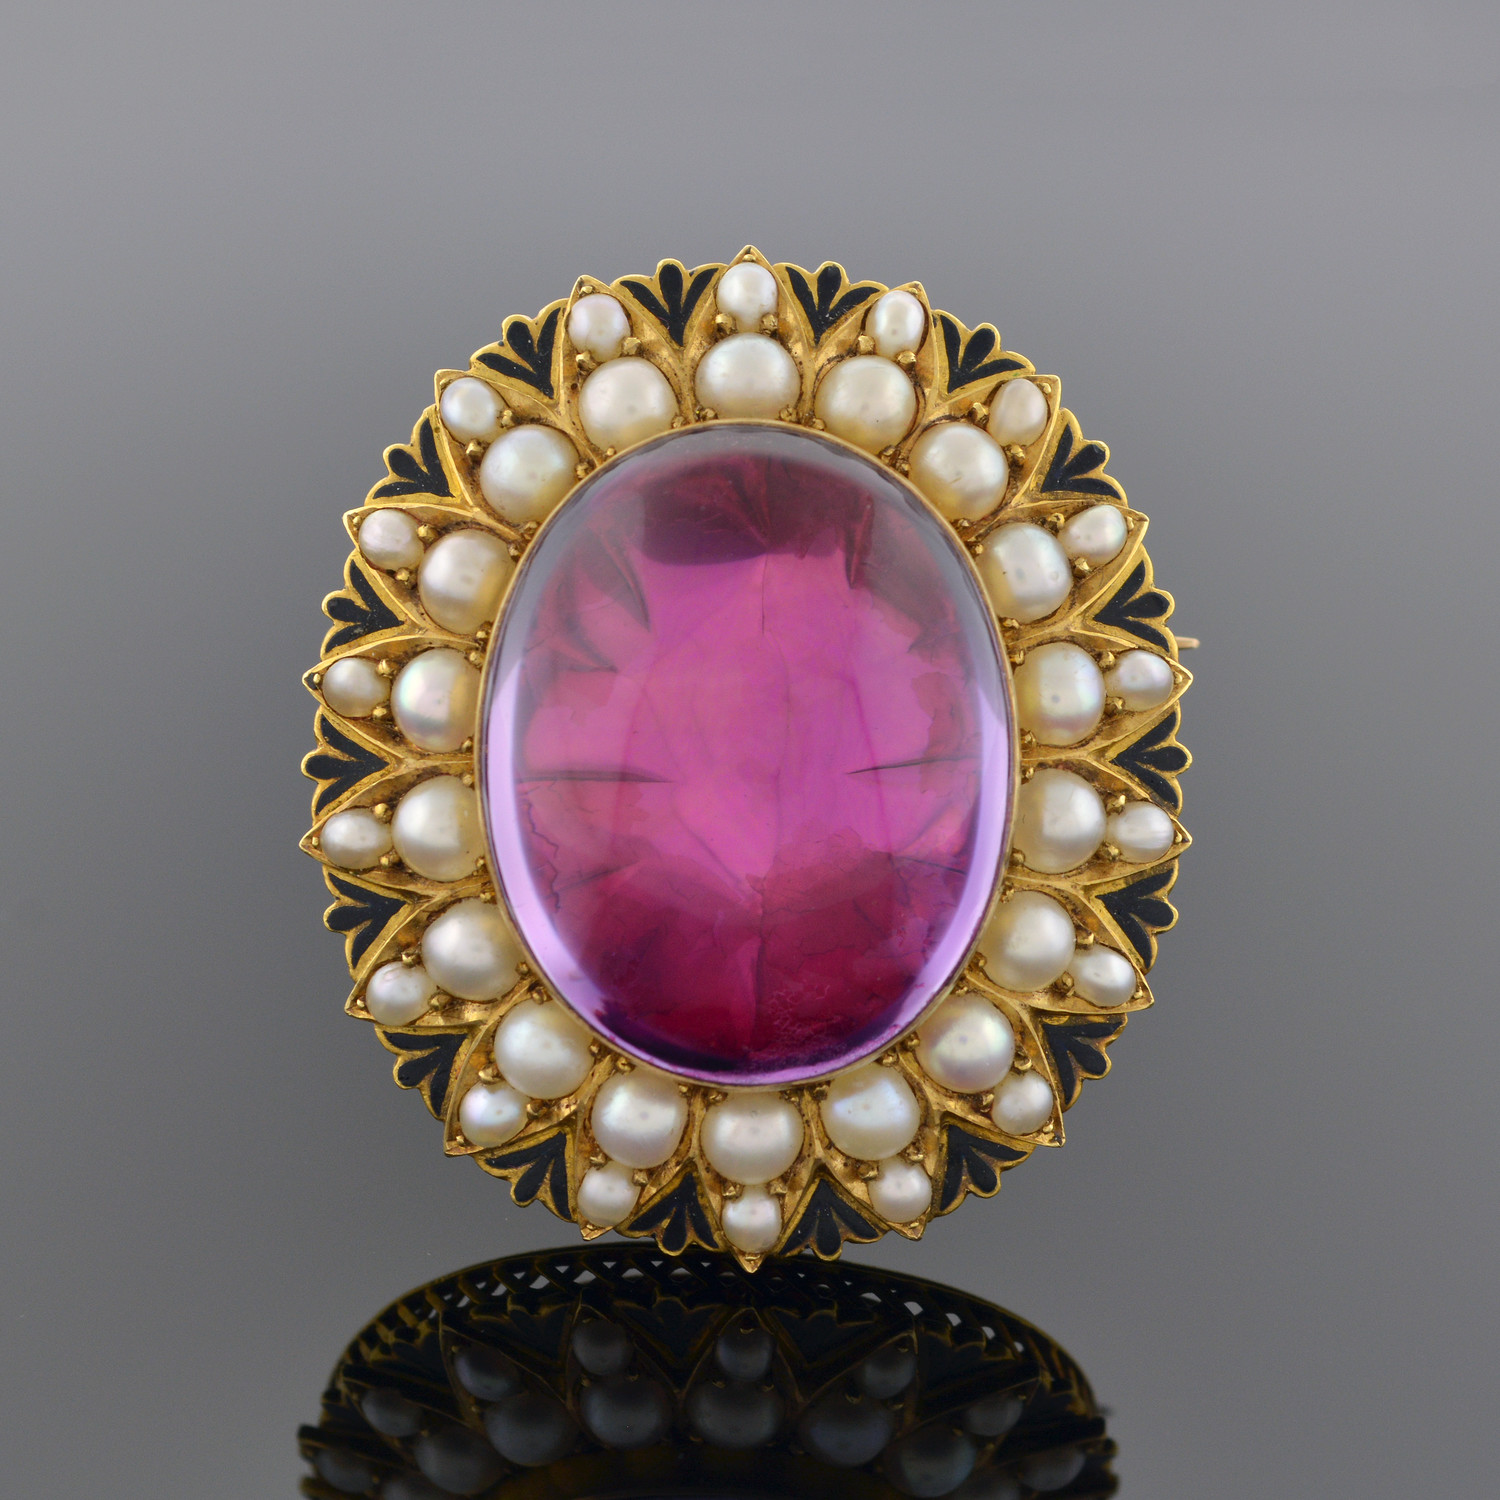 Renaissance Revival Amethyst, Pearl, and Enamel Brooch